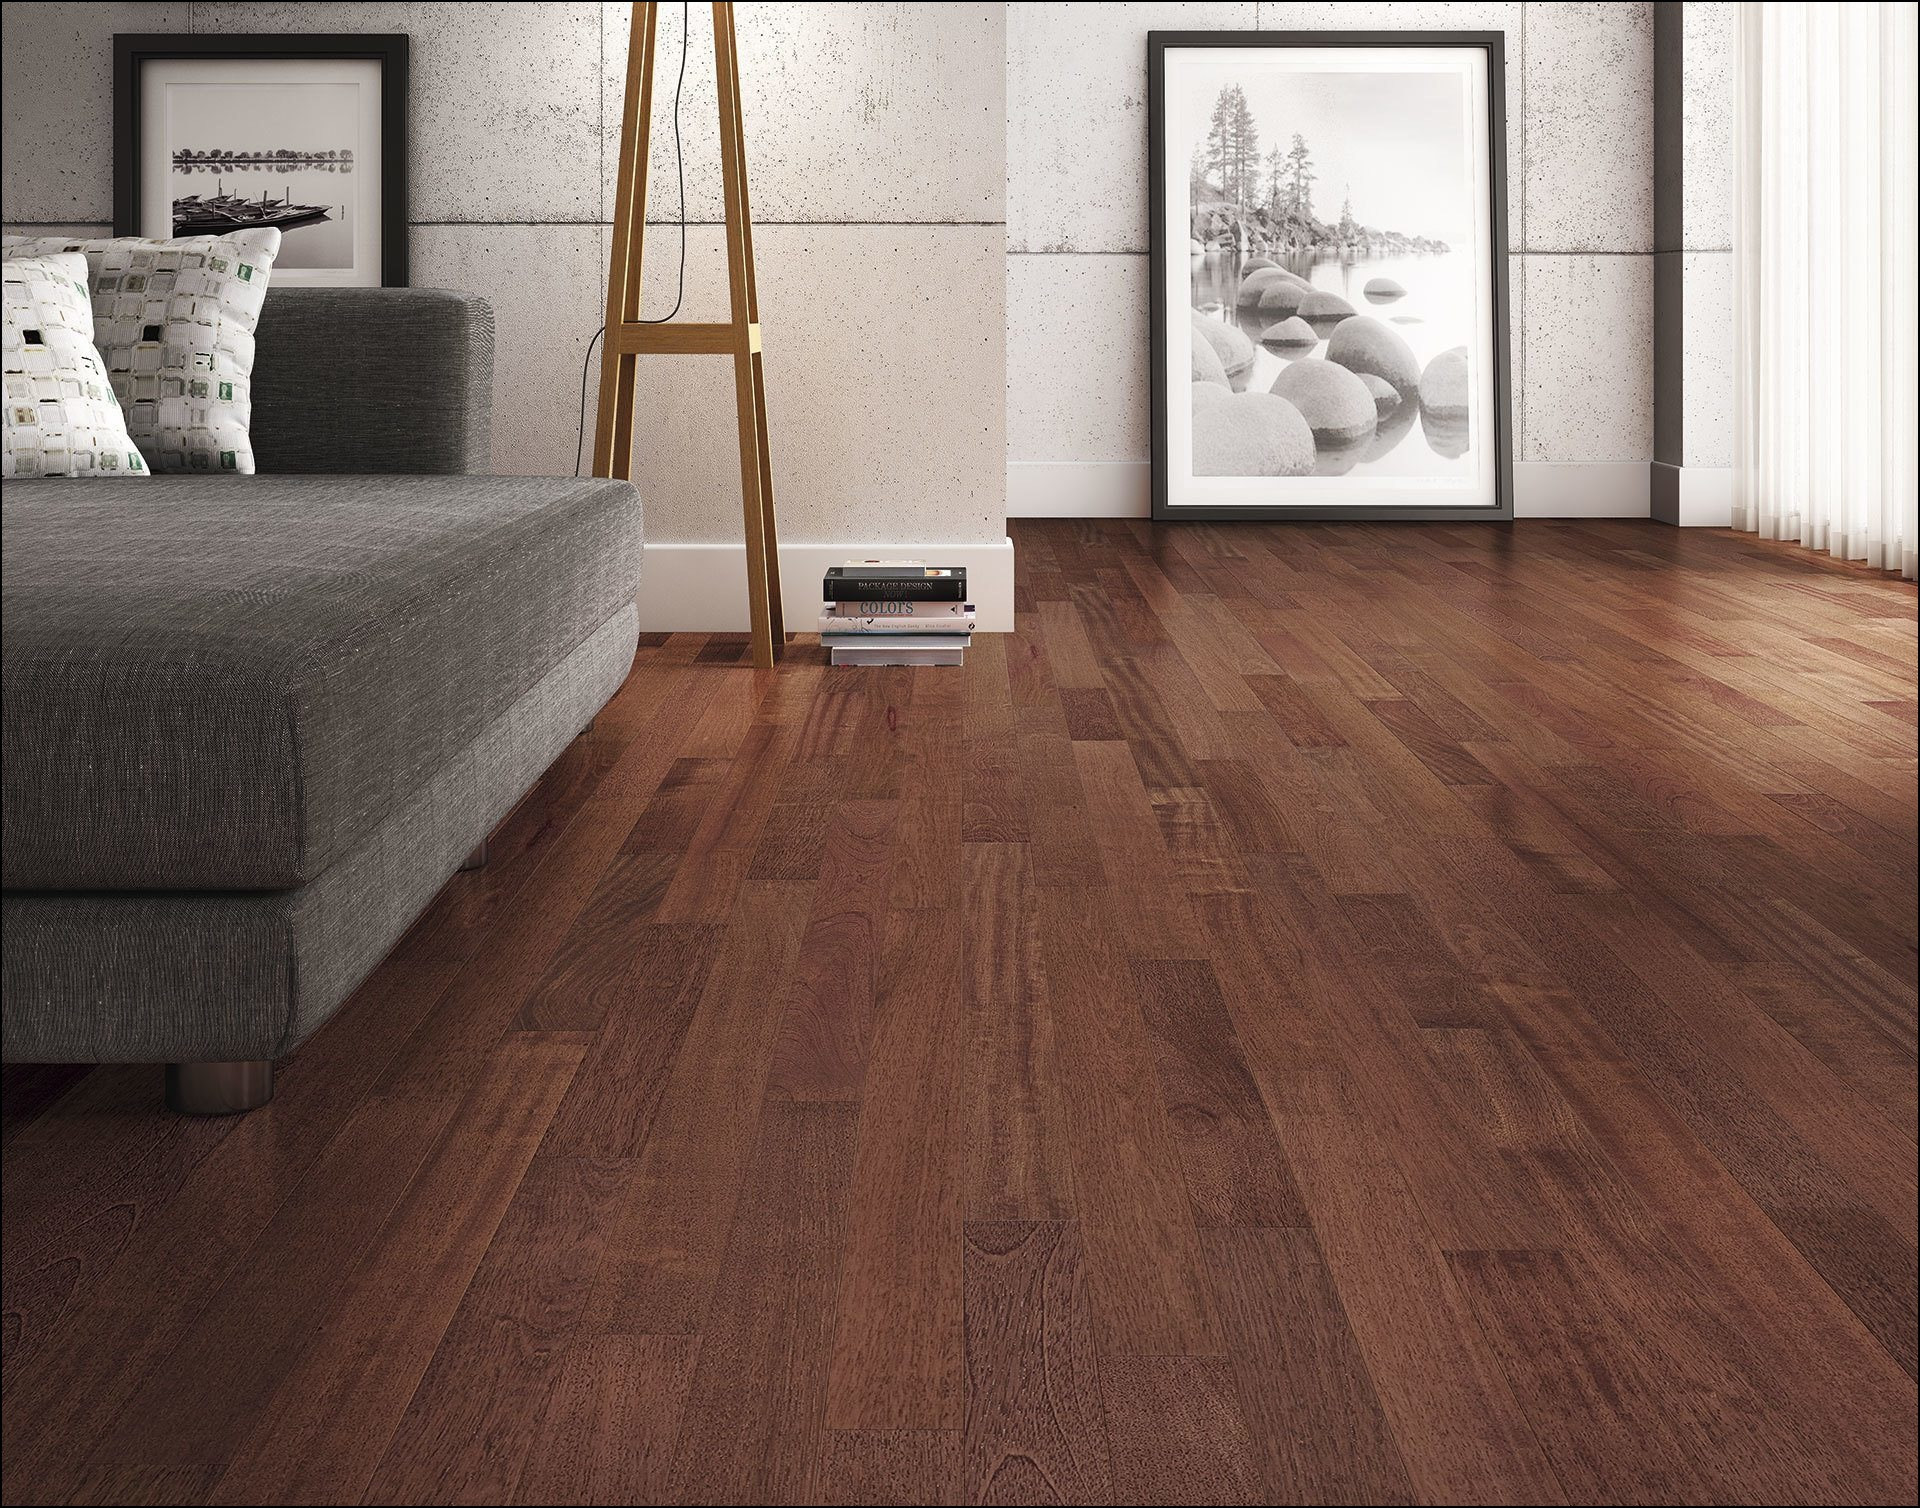 bruce hardwood floors lowes of wide plank flooring ideas regarding wide plank wood flooring lowes galerie laminate flooring durability bamboo flooring vs hardwood laminate of